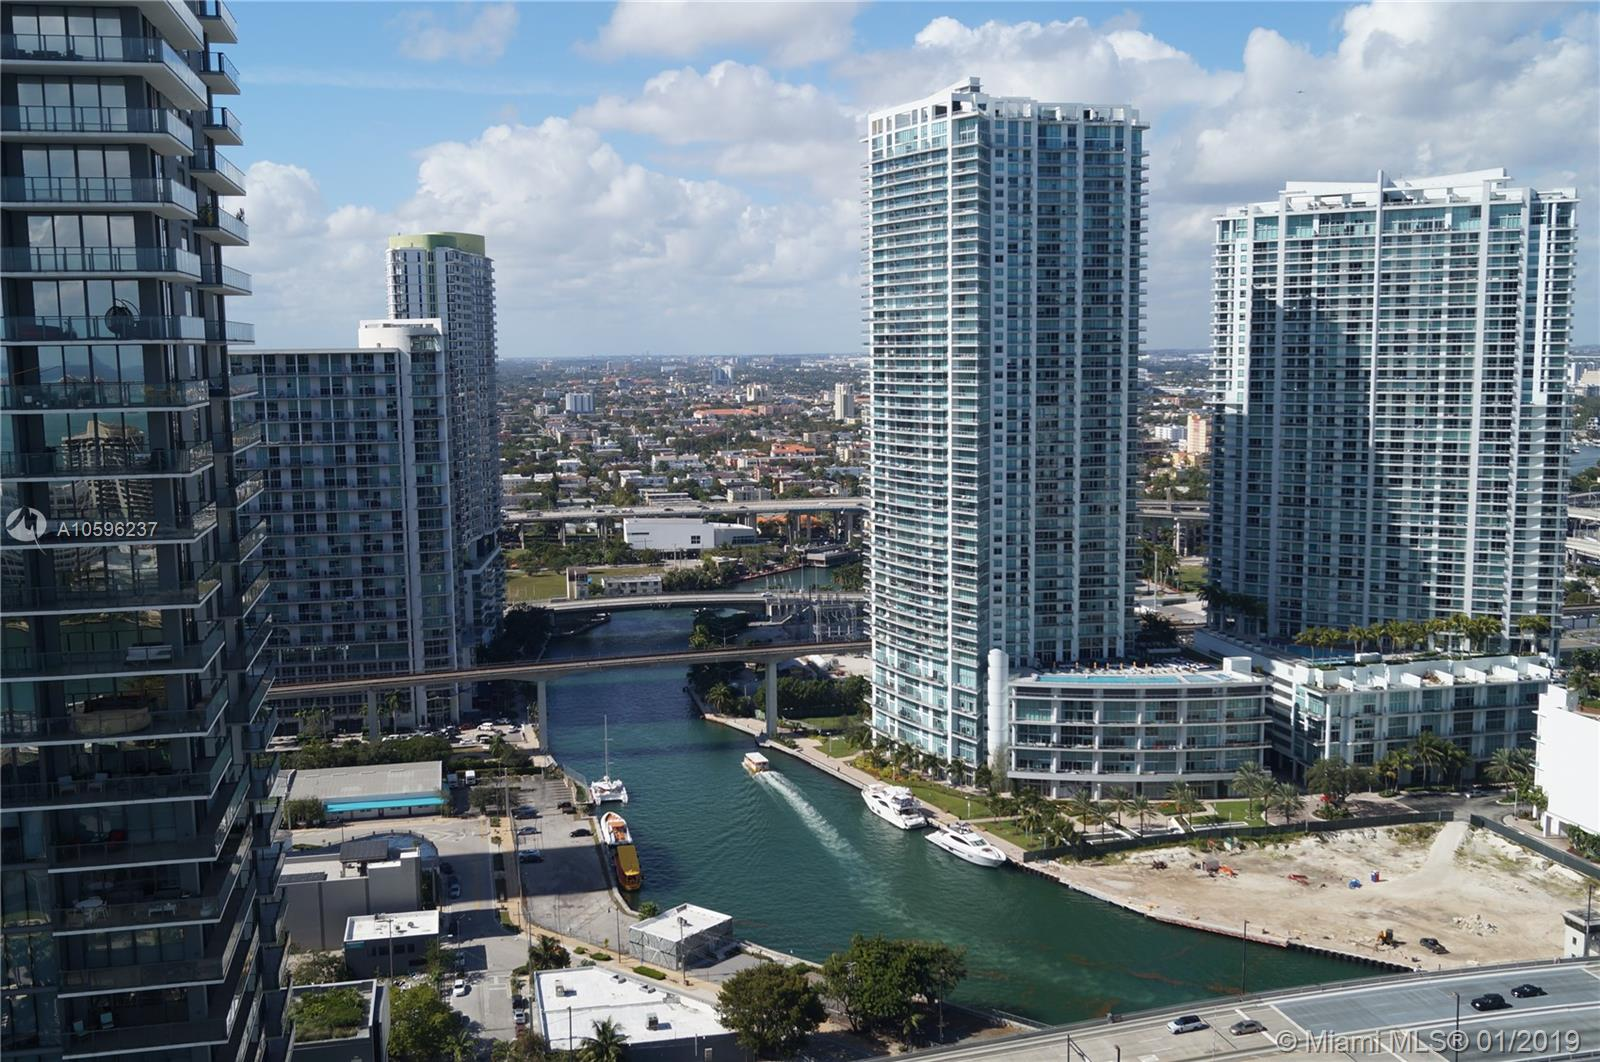 500 Brickell Avenue and 55 SE 6 Street, Miami, FL 33131, 500 Brickell #3602, Brickell, Miami A10596237 image #29